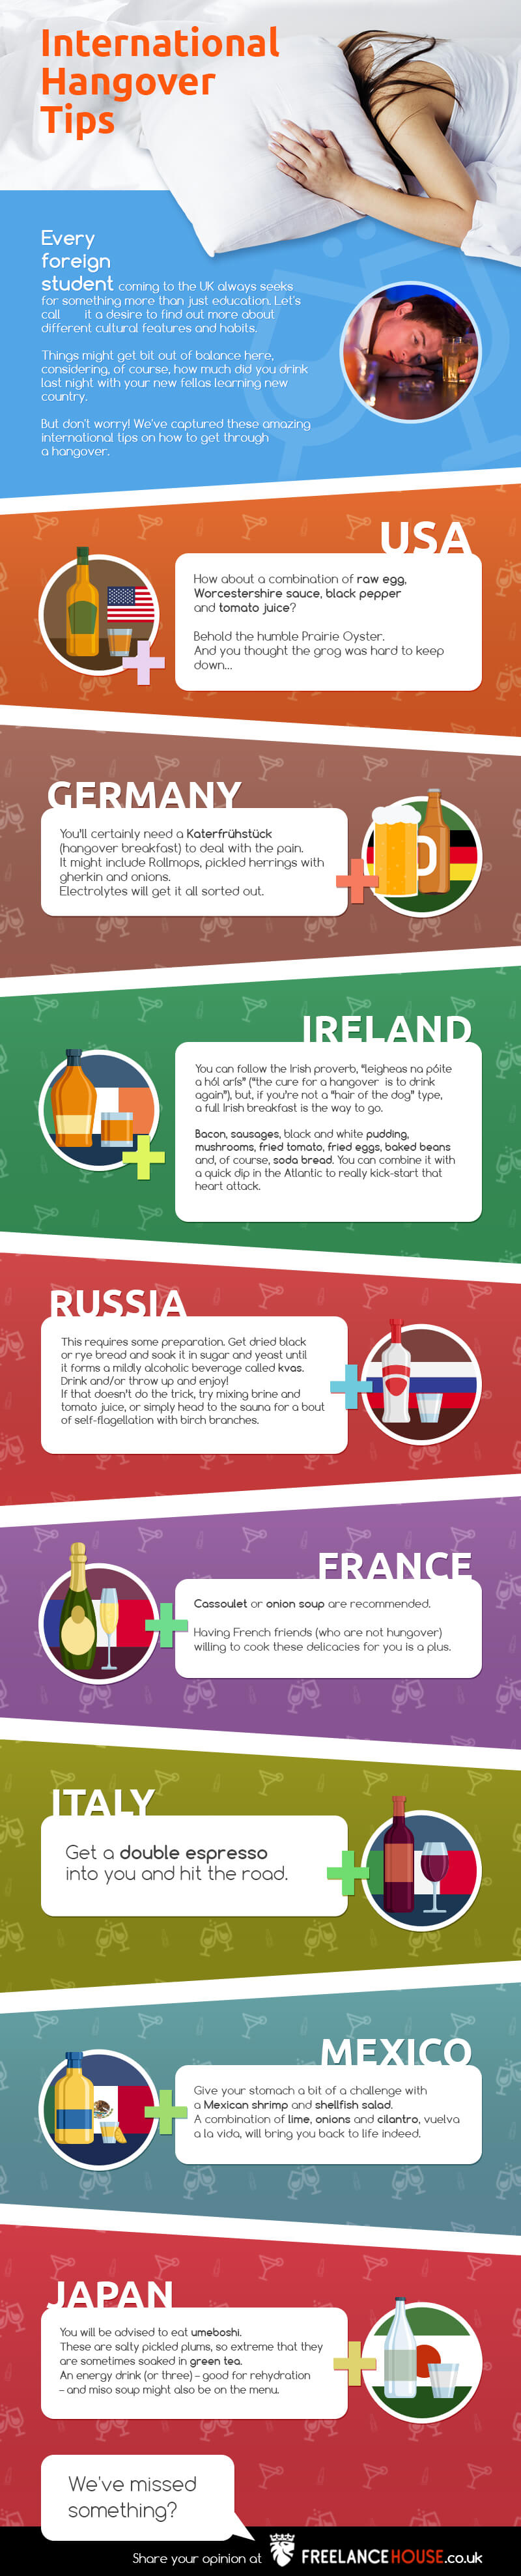 International-Hangover-Tips-infographic-plaza